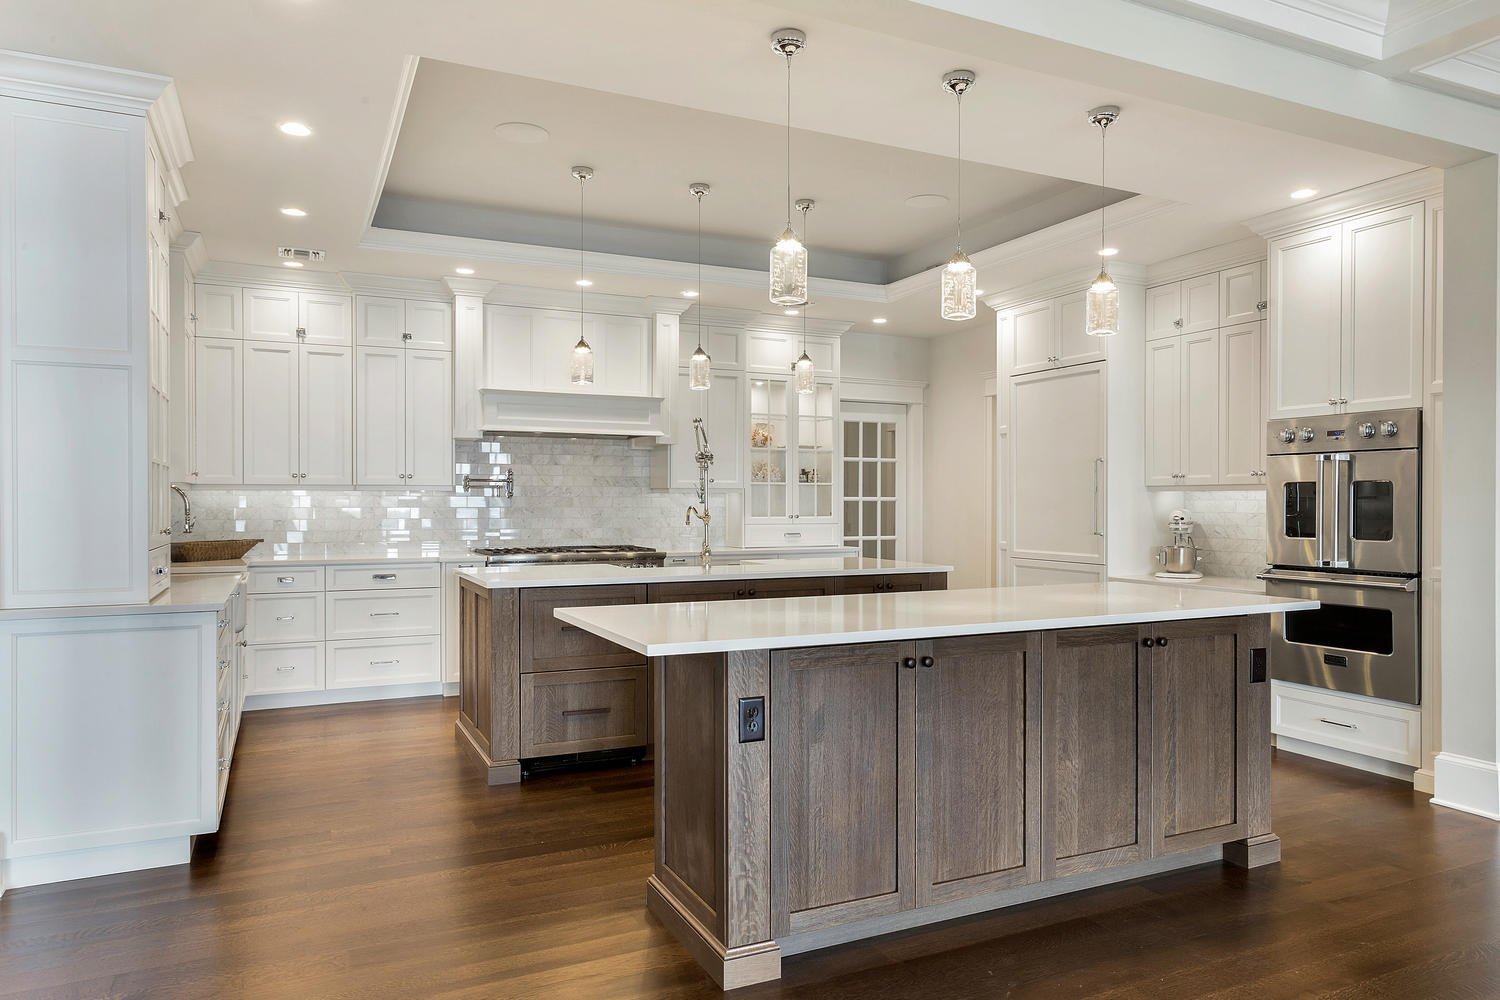 Design Line Kitchens Kitchen Cabinetry  Design Line Kitchens In Sea Girt Nj